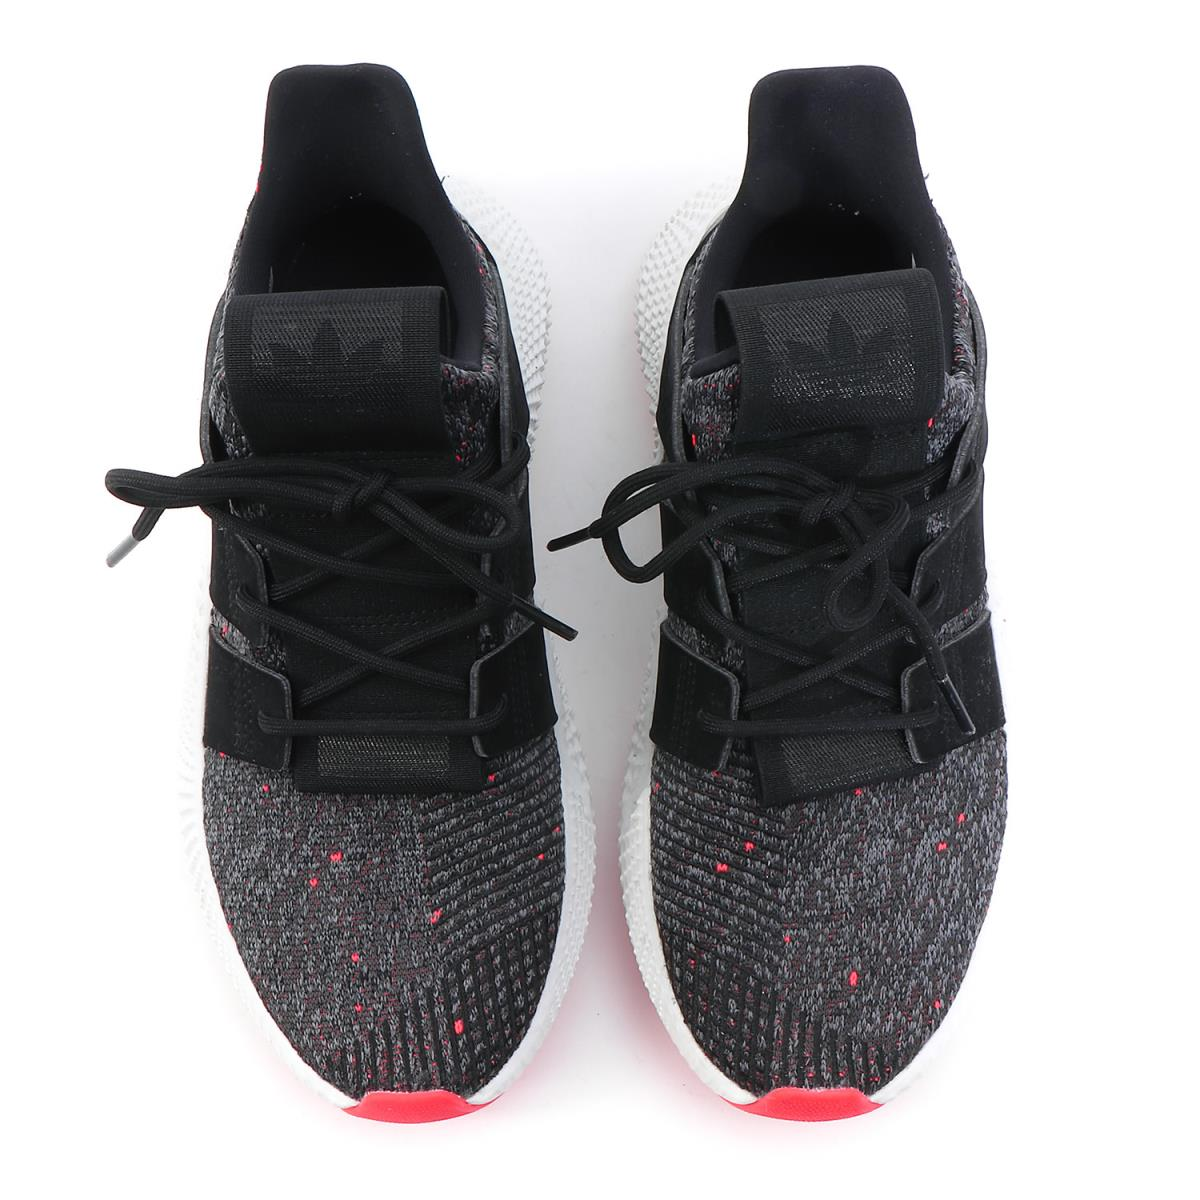 faa743f6d51 BEEGLE by Boo-Bee  adidas (Adidas) 17A W PROPHERE (CQ3022) black US7 ...